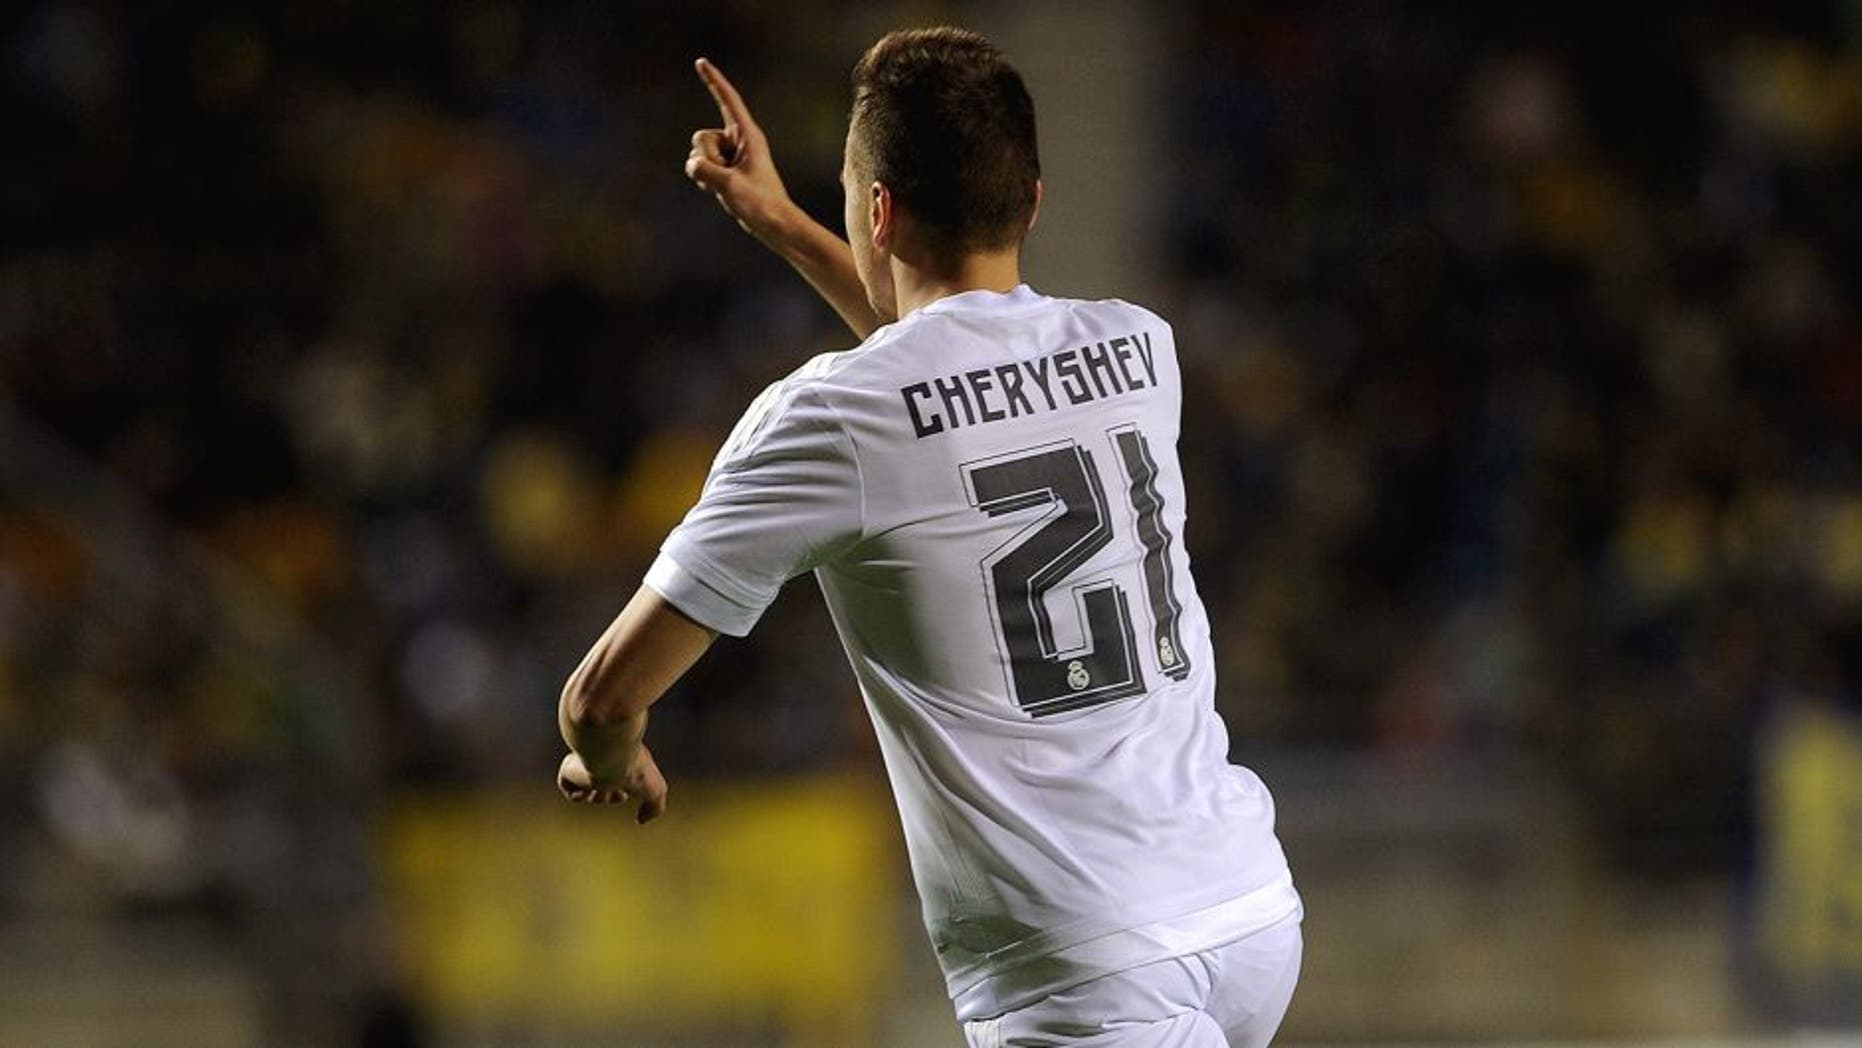 Real Madrid's Russian midfielder Denis Cheryshev celebrates after scoring during the Spanish Copa del Rey (King's Cup) football match Cadiz CF vs Real Madrid at the Ramon de Carranza in Cadiz on December 2, 2015. AFP PHOTO / CRISTINA QUICLER / AFP / CRISTINA QUICLER (Photo credit should read CRISTINA QUICLER/AFP/Getty Images)